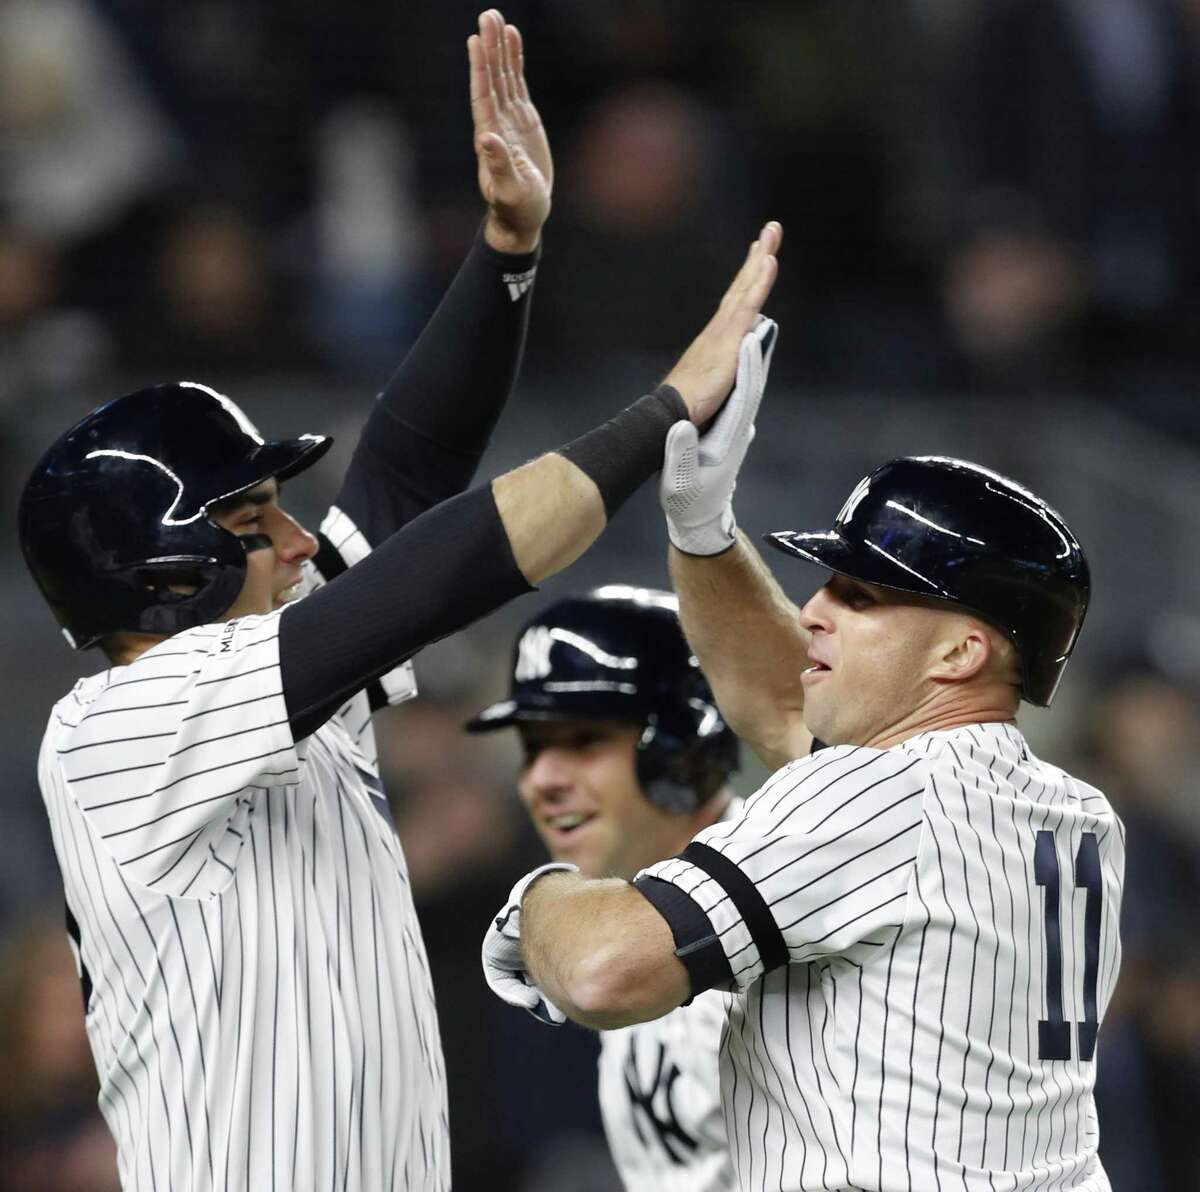 New York Yankees Brett Gardner (11) celebrates with the Yankees Mike Tauchman, left, and Austin Romine, center, after hitting a seventh-inning grand slam in baseball game against the Boston Red Sox, Wednesday, April 17, 2019, in New York. (AP Photo/Kathy Willens)